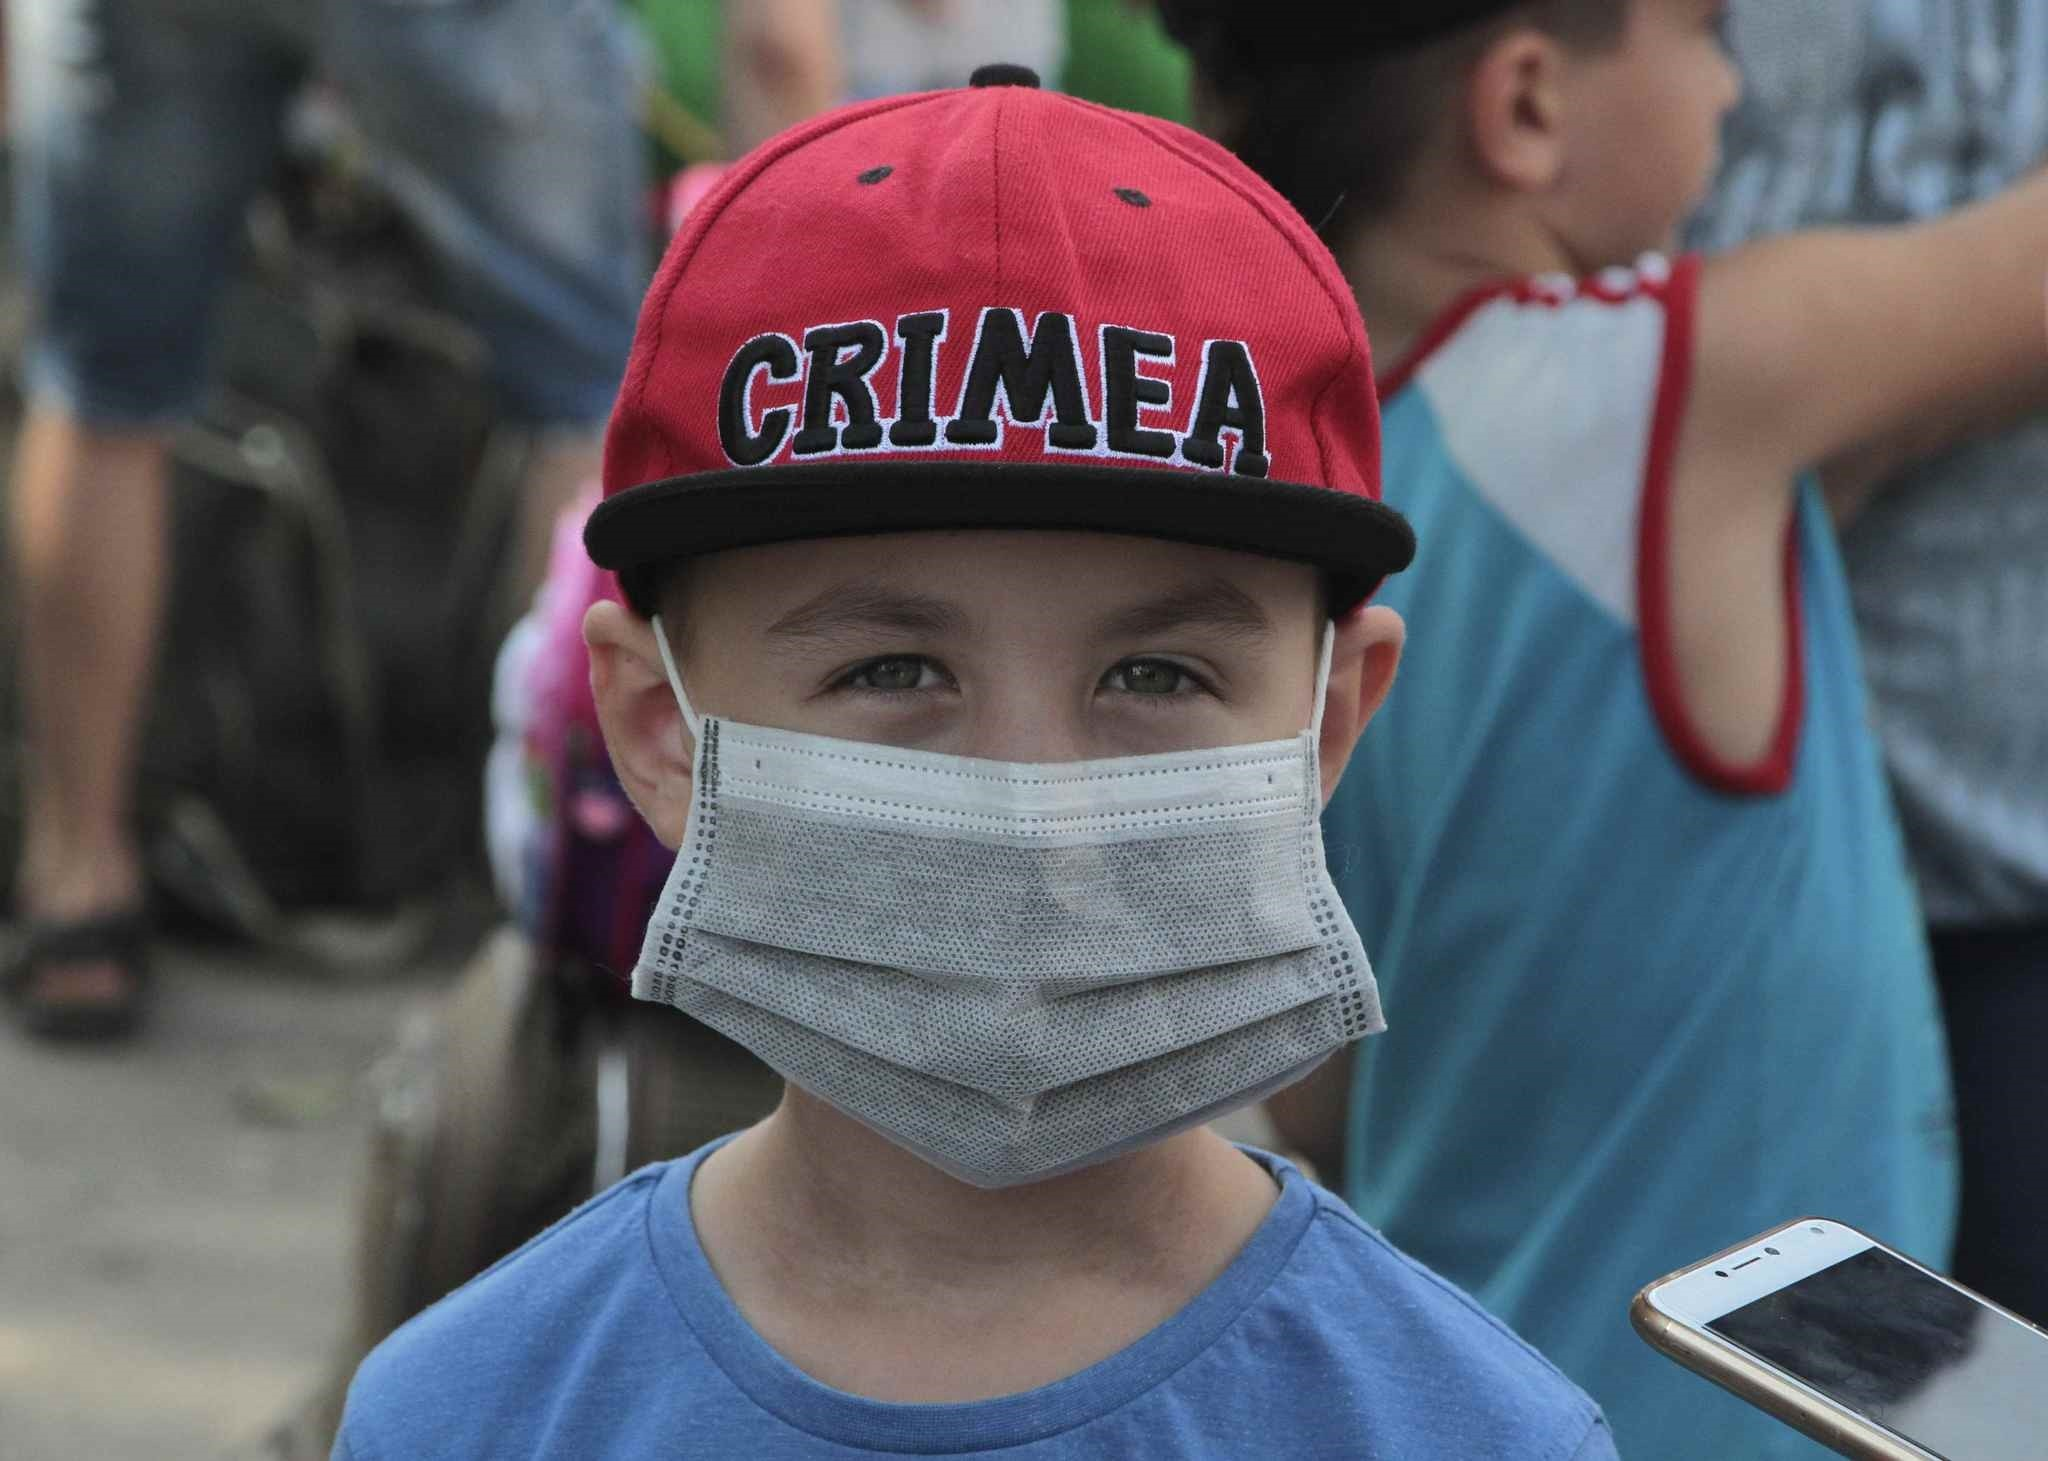 A boy wears a protective mask during an evacuation of school-aged children due to concerns over air pollution buildup in Russian-controlled Armyansk, Ukraine, Sept. 4, 2018. (Reuters Photo)